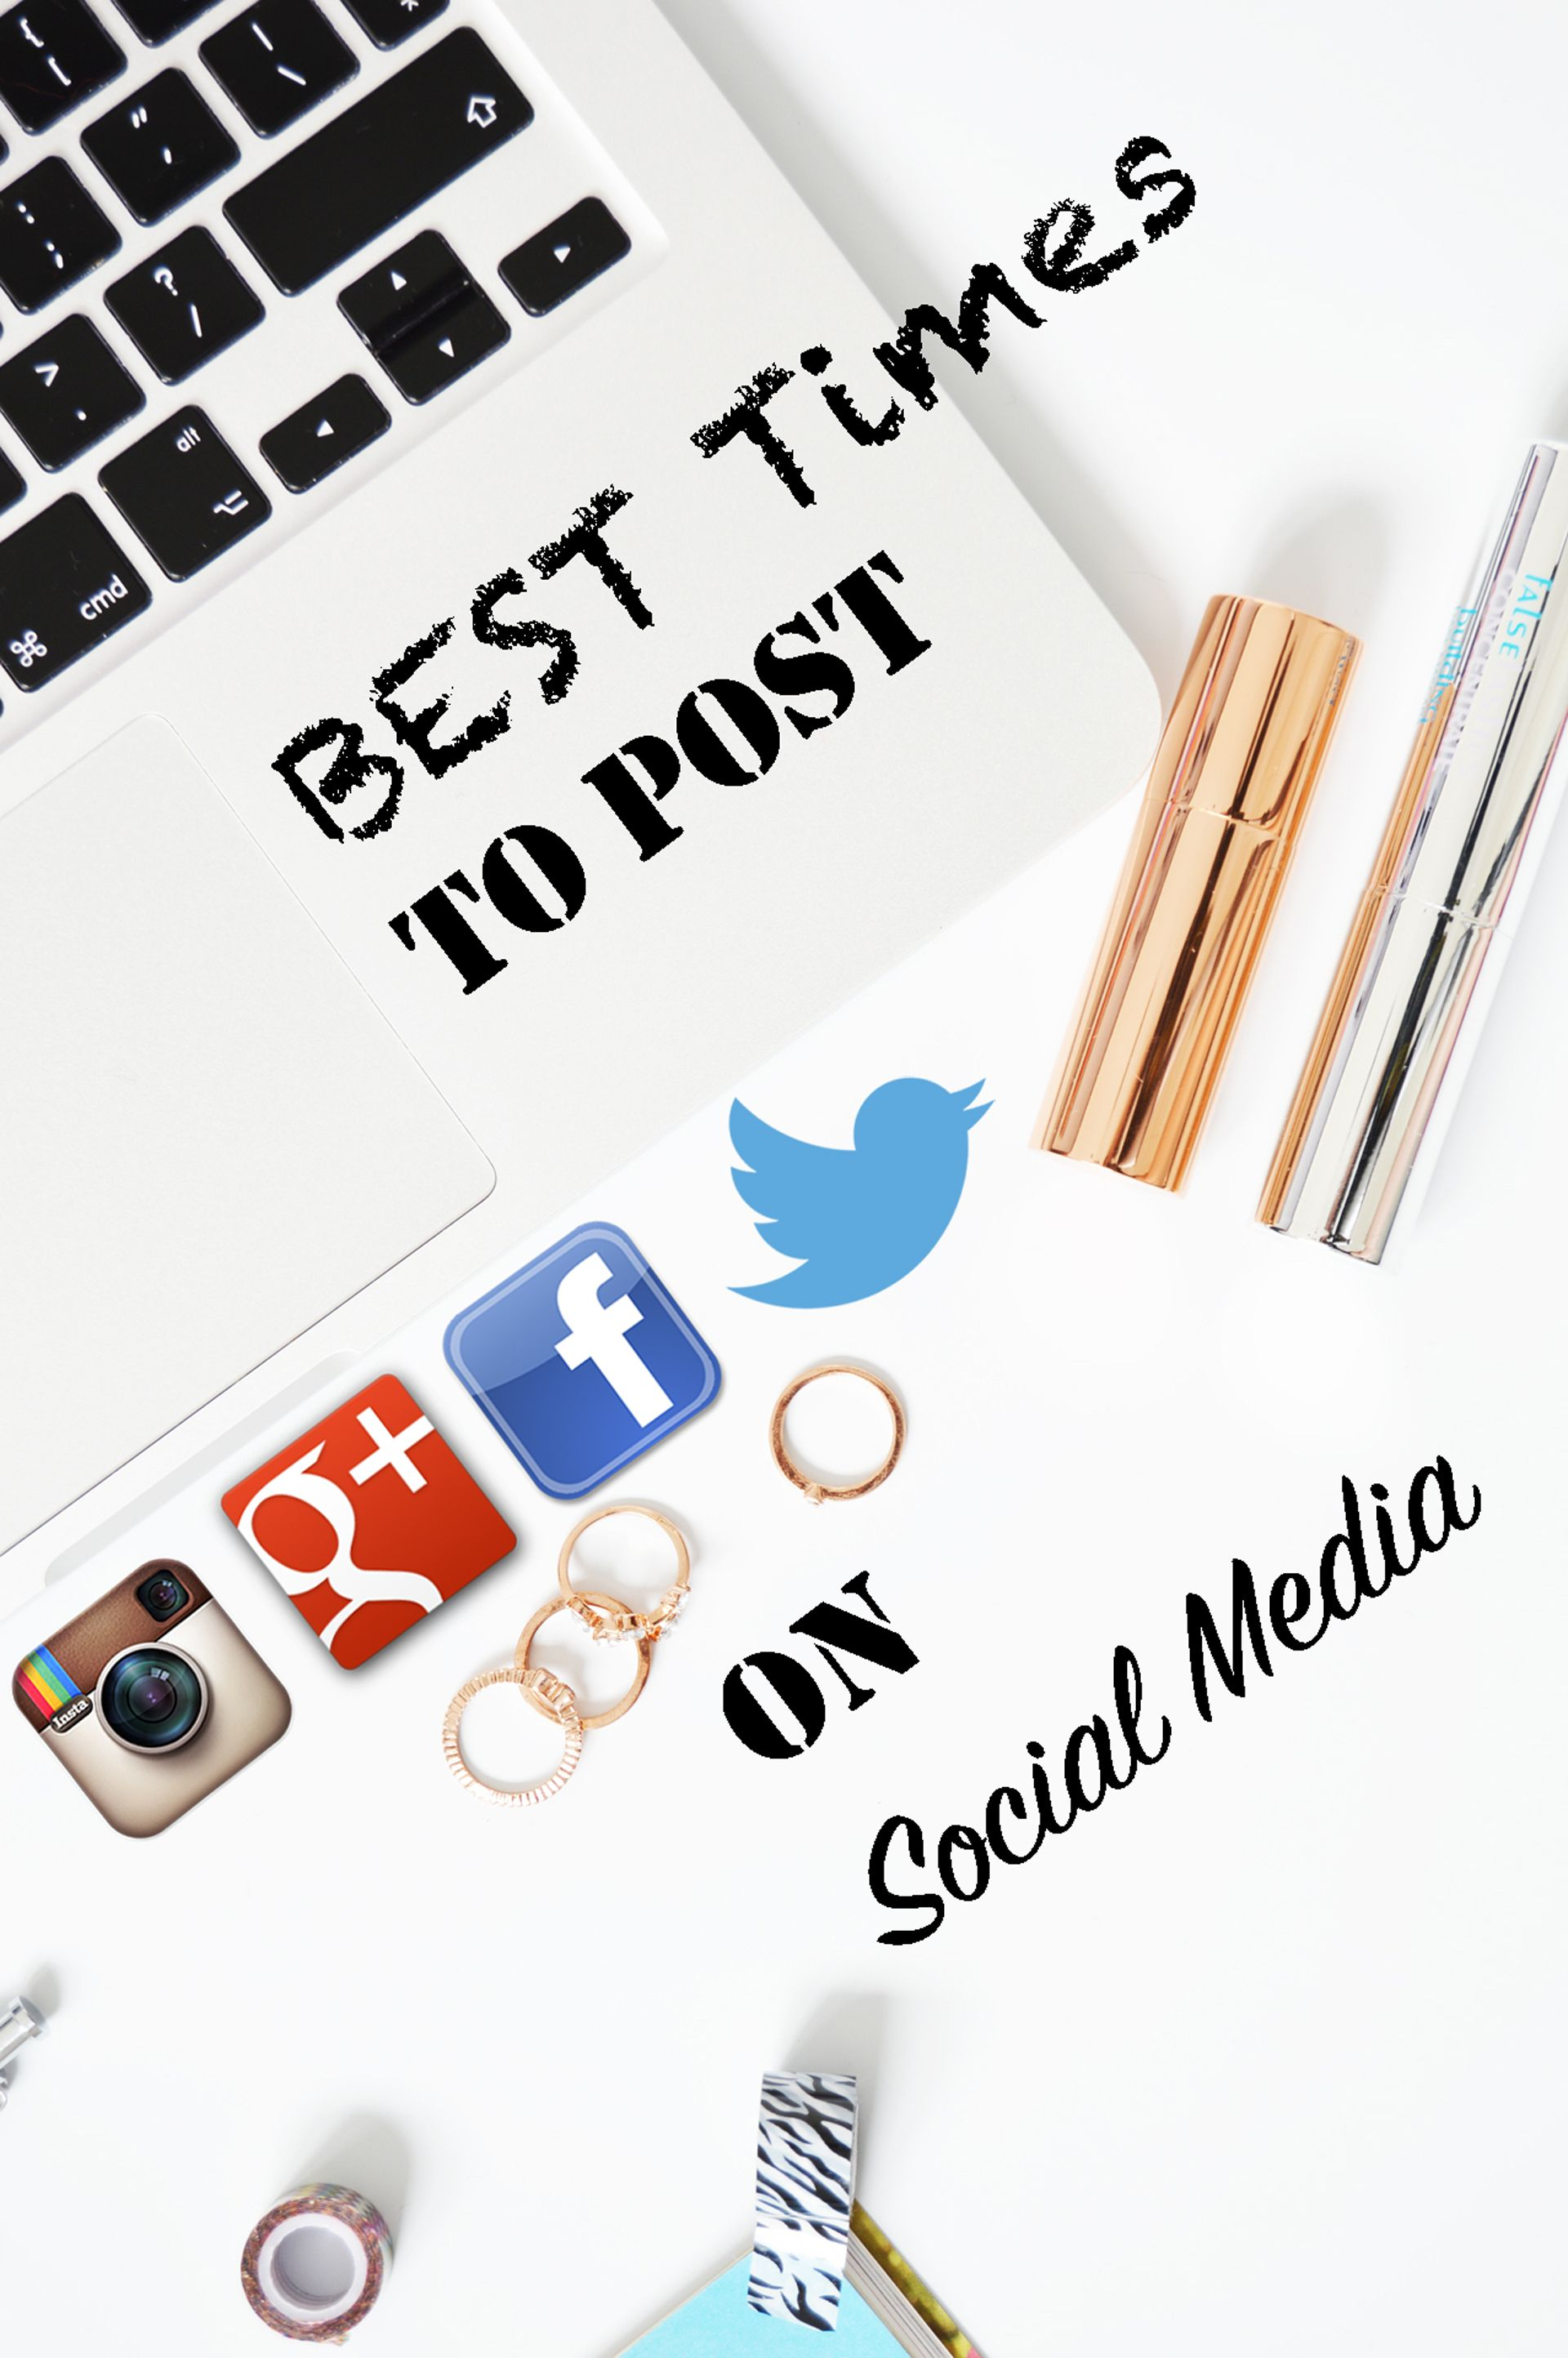 Best times to post on social media to increase your traffic and get more impressions